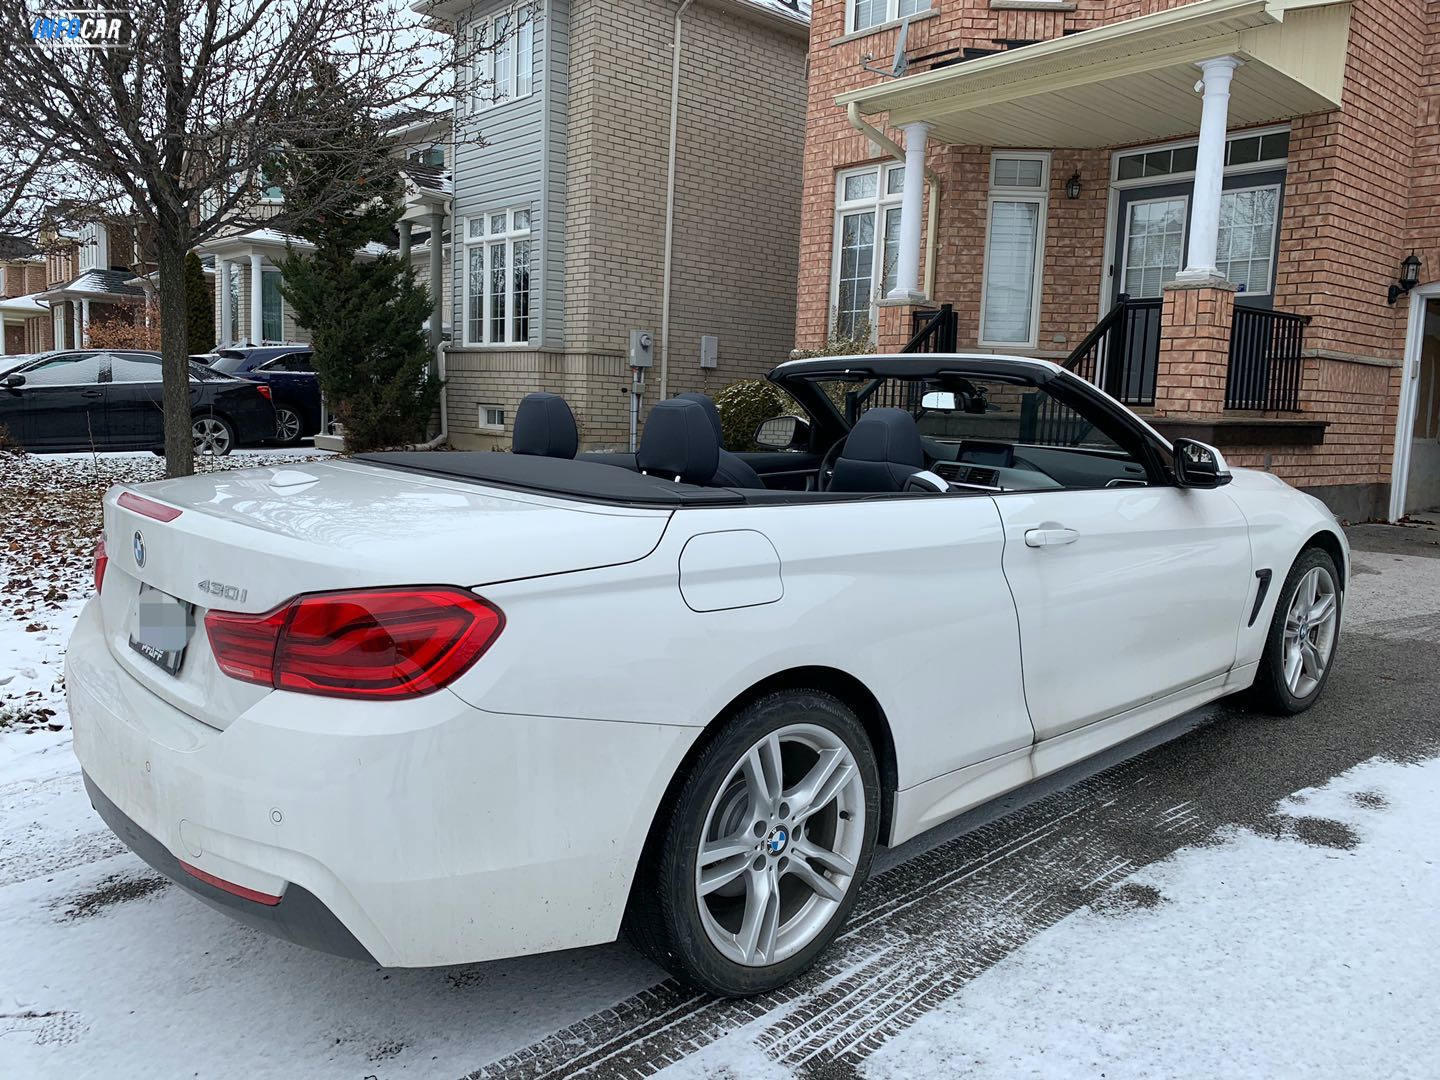 2019 BMW 4-Series Cabriolet - INFOCAR - Toronto's Most Comprehensive New and Used Auto Trading Platform